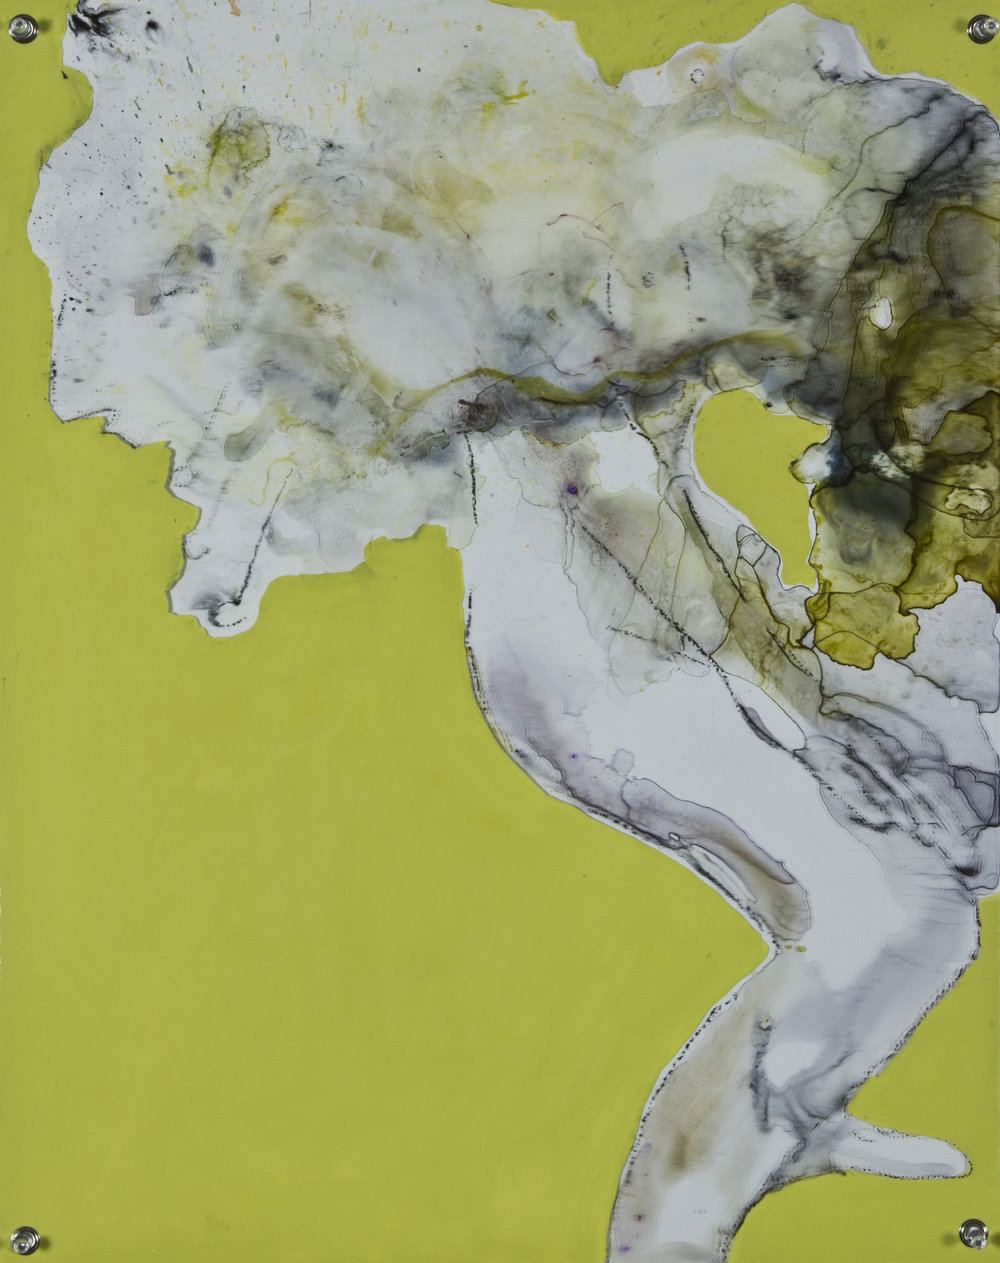 Lemongrass Fog, 2014, watercolor and acrylic on grommeted mylar, 18x24 inches